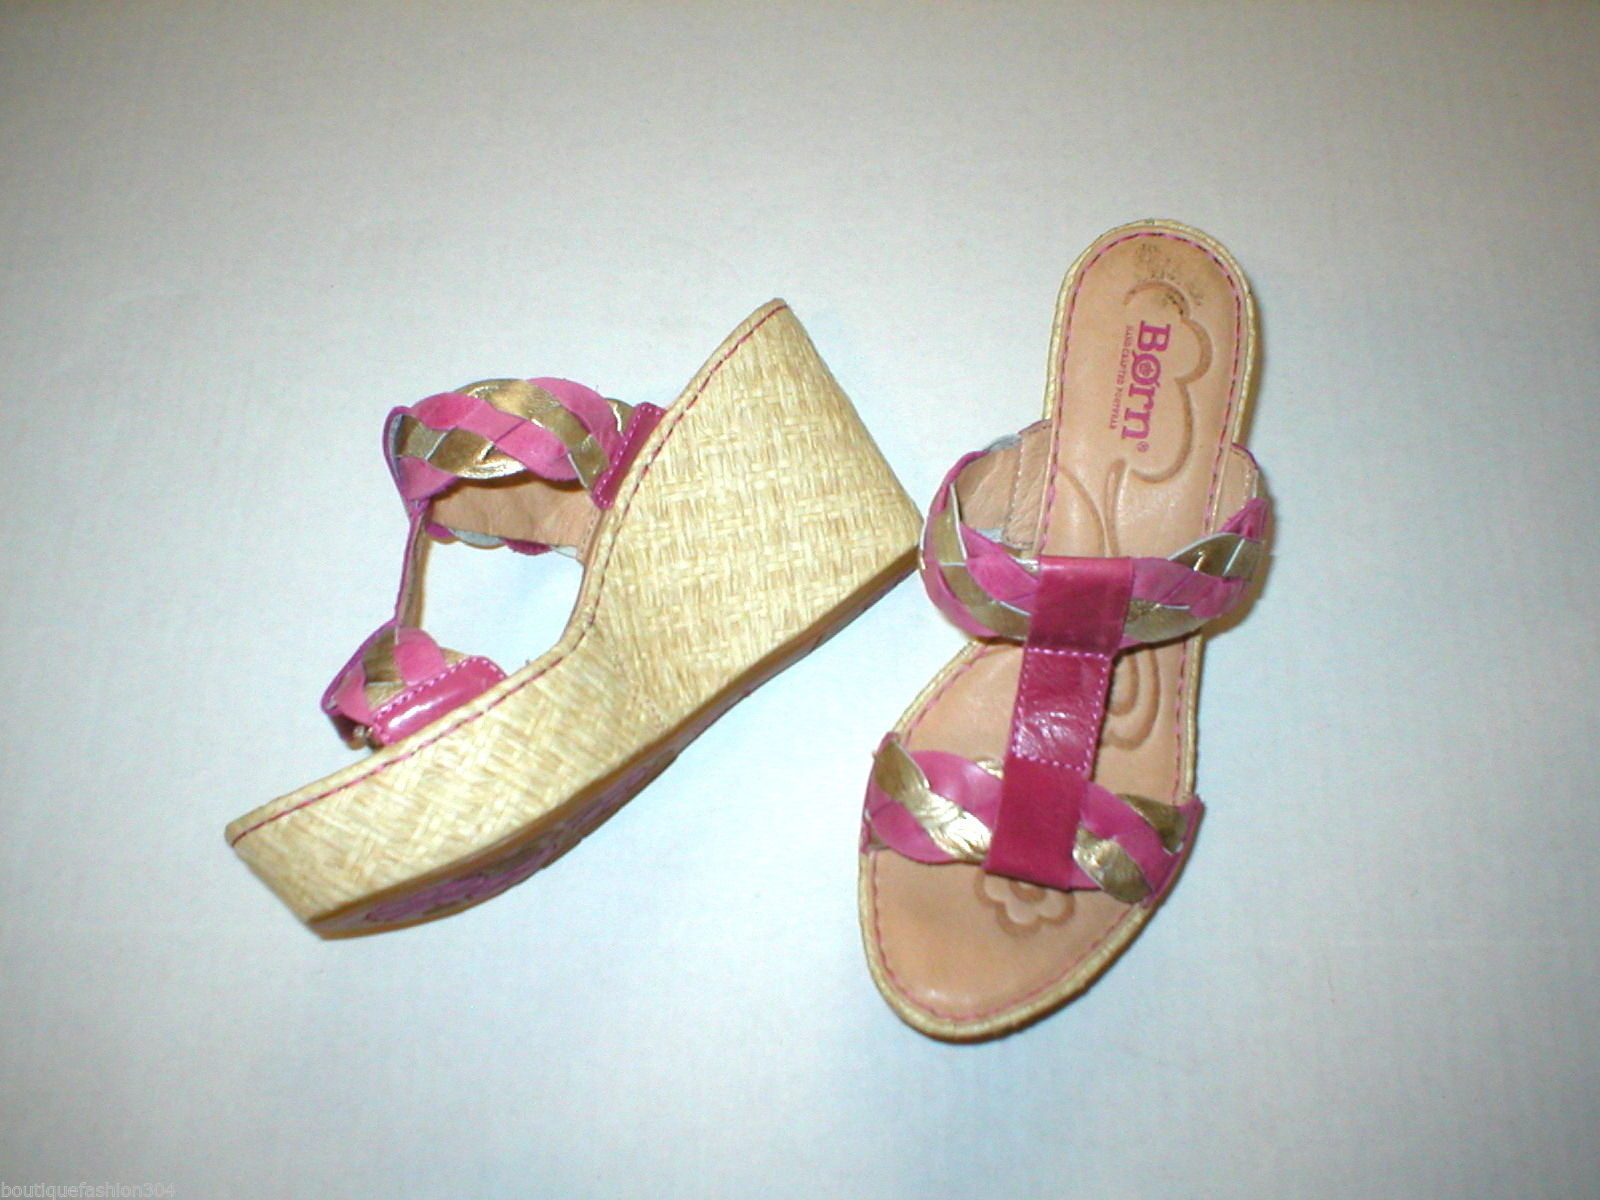 New Womens 9 Born Sandals Shoes Wedge Pink Comfort Gold Tan Braid Barstow Metall